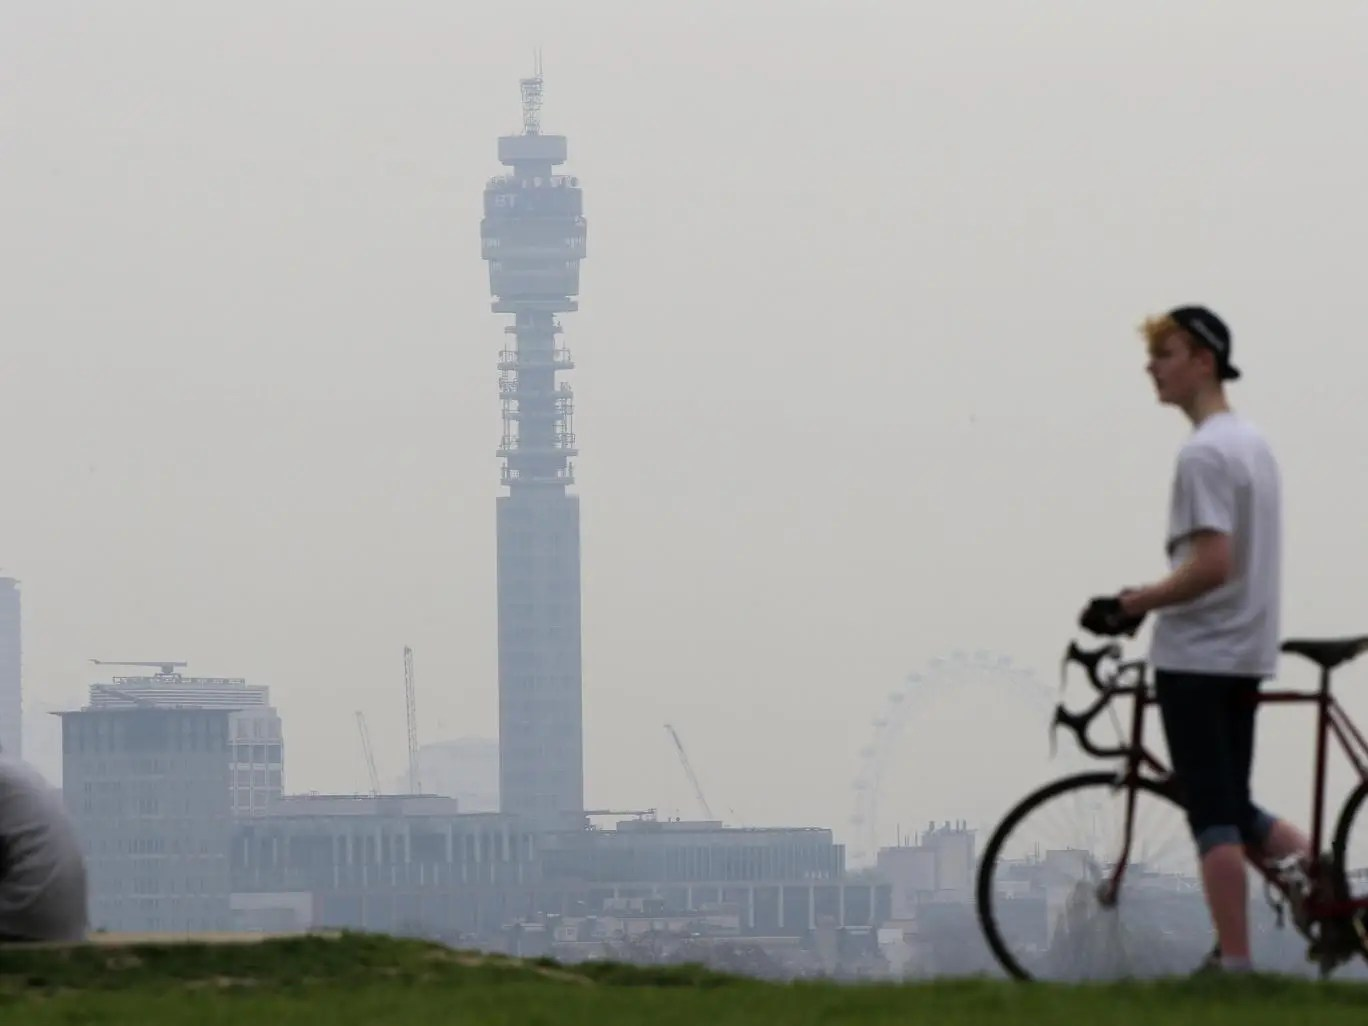 Air pollution in London causes thousands of early deaths every year